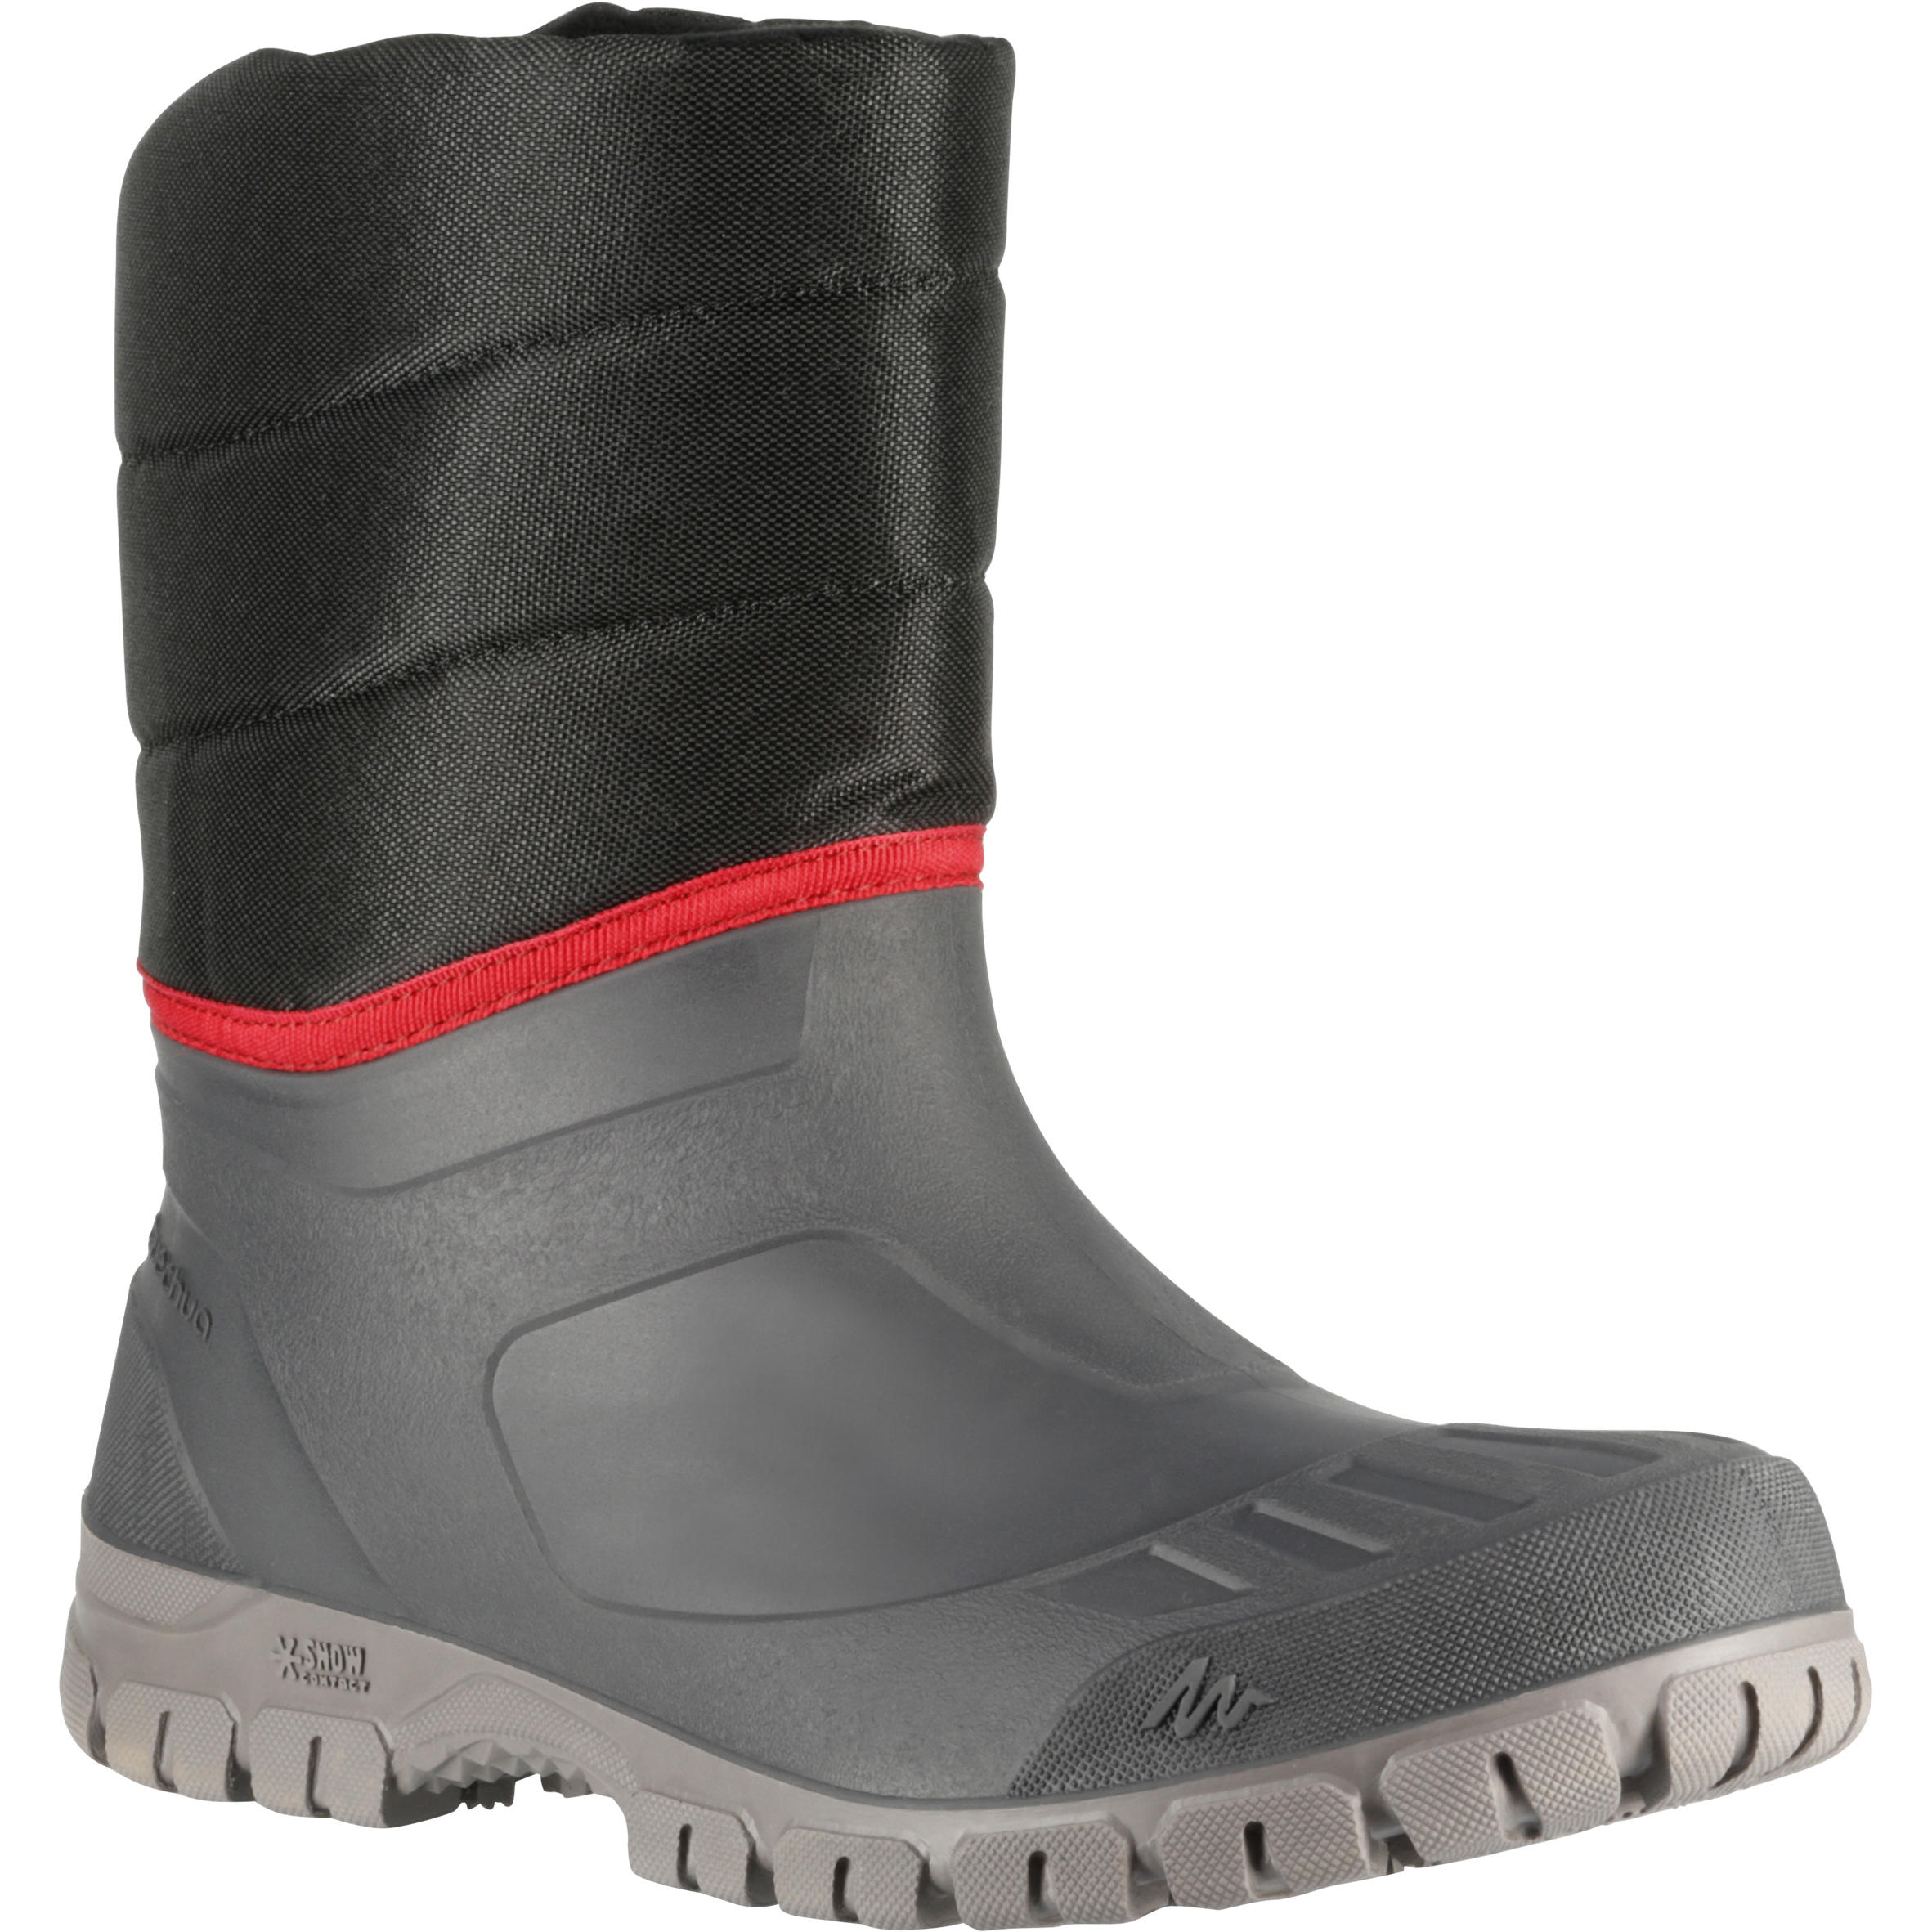 SH100 Men's X-Warm Black Snow Hiking Boots.